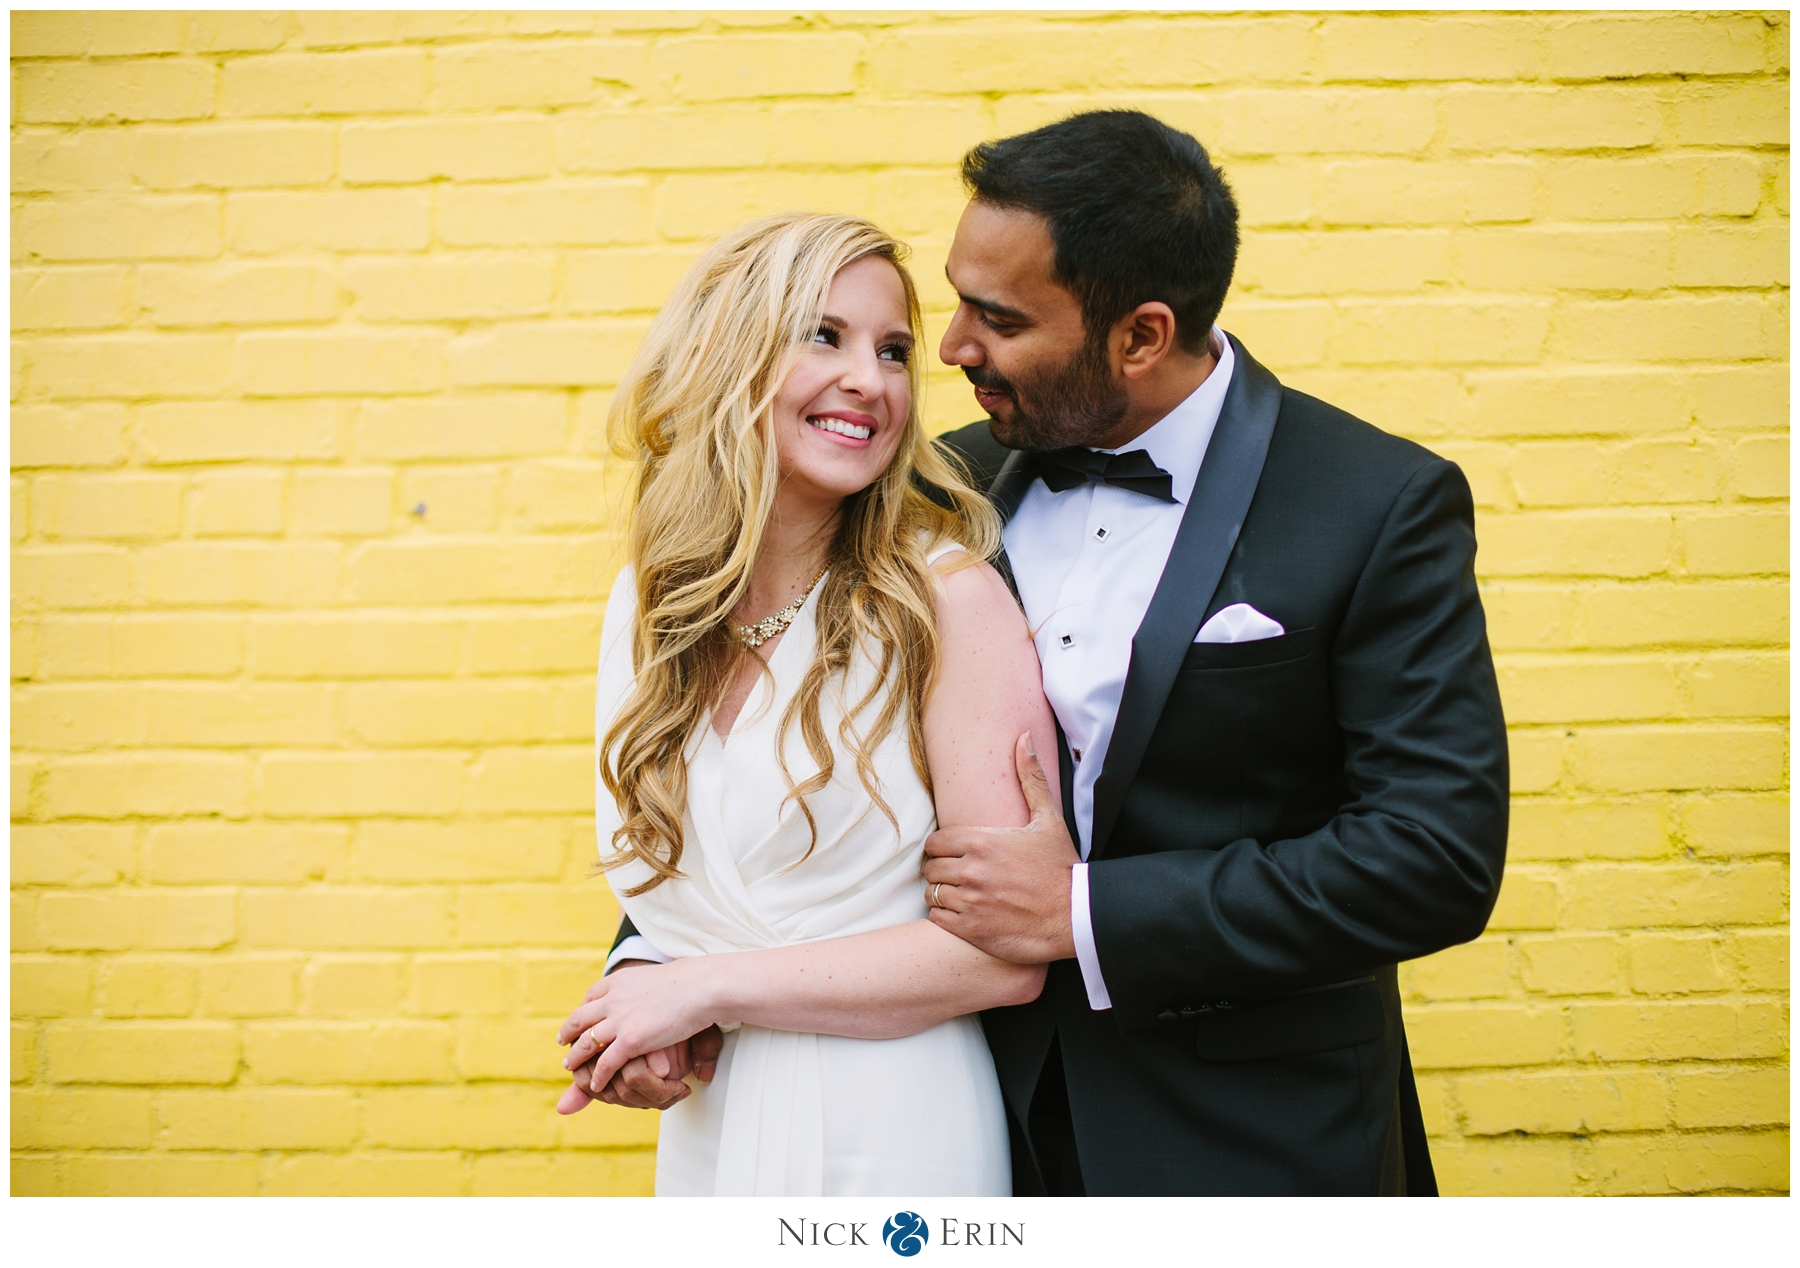 Donner_Photography_Old Town Wedding_Mary & Amar_0003